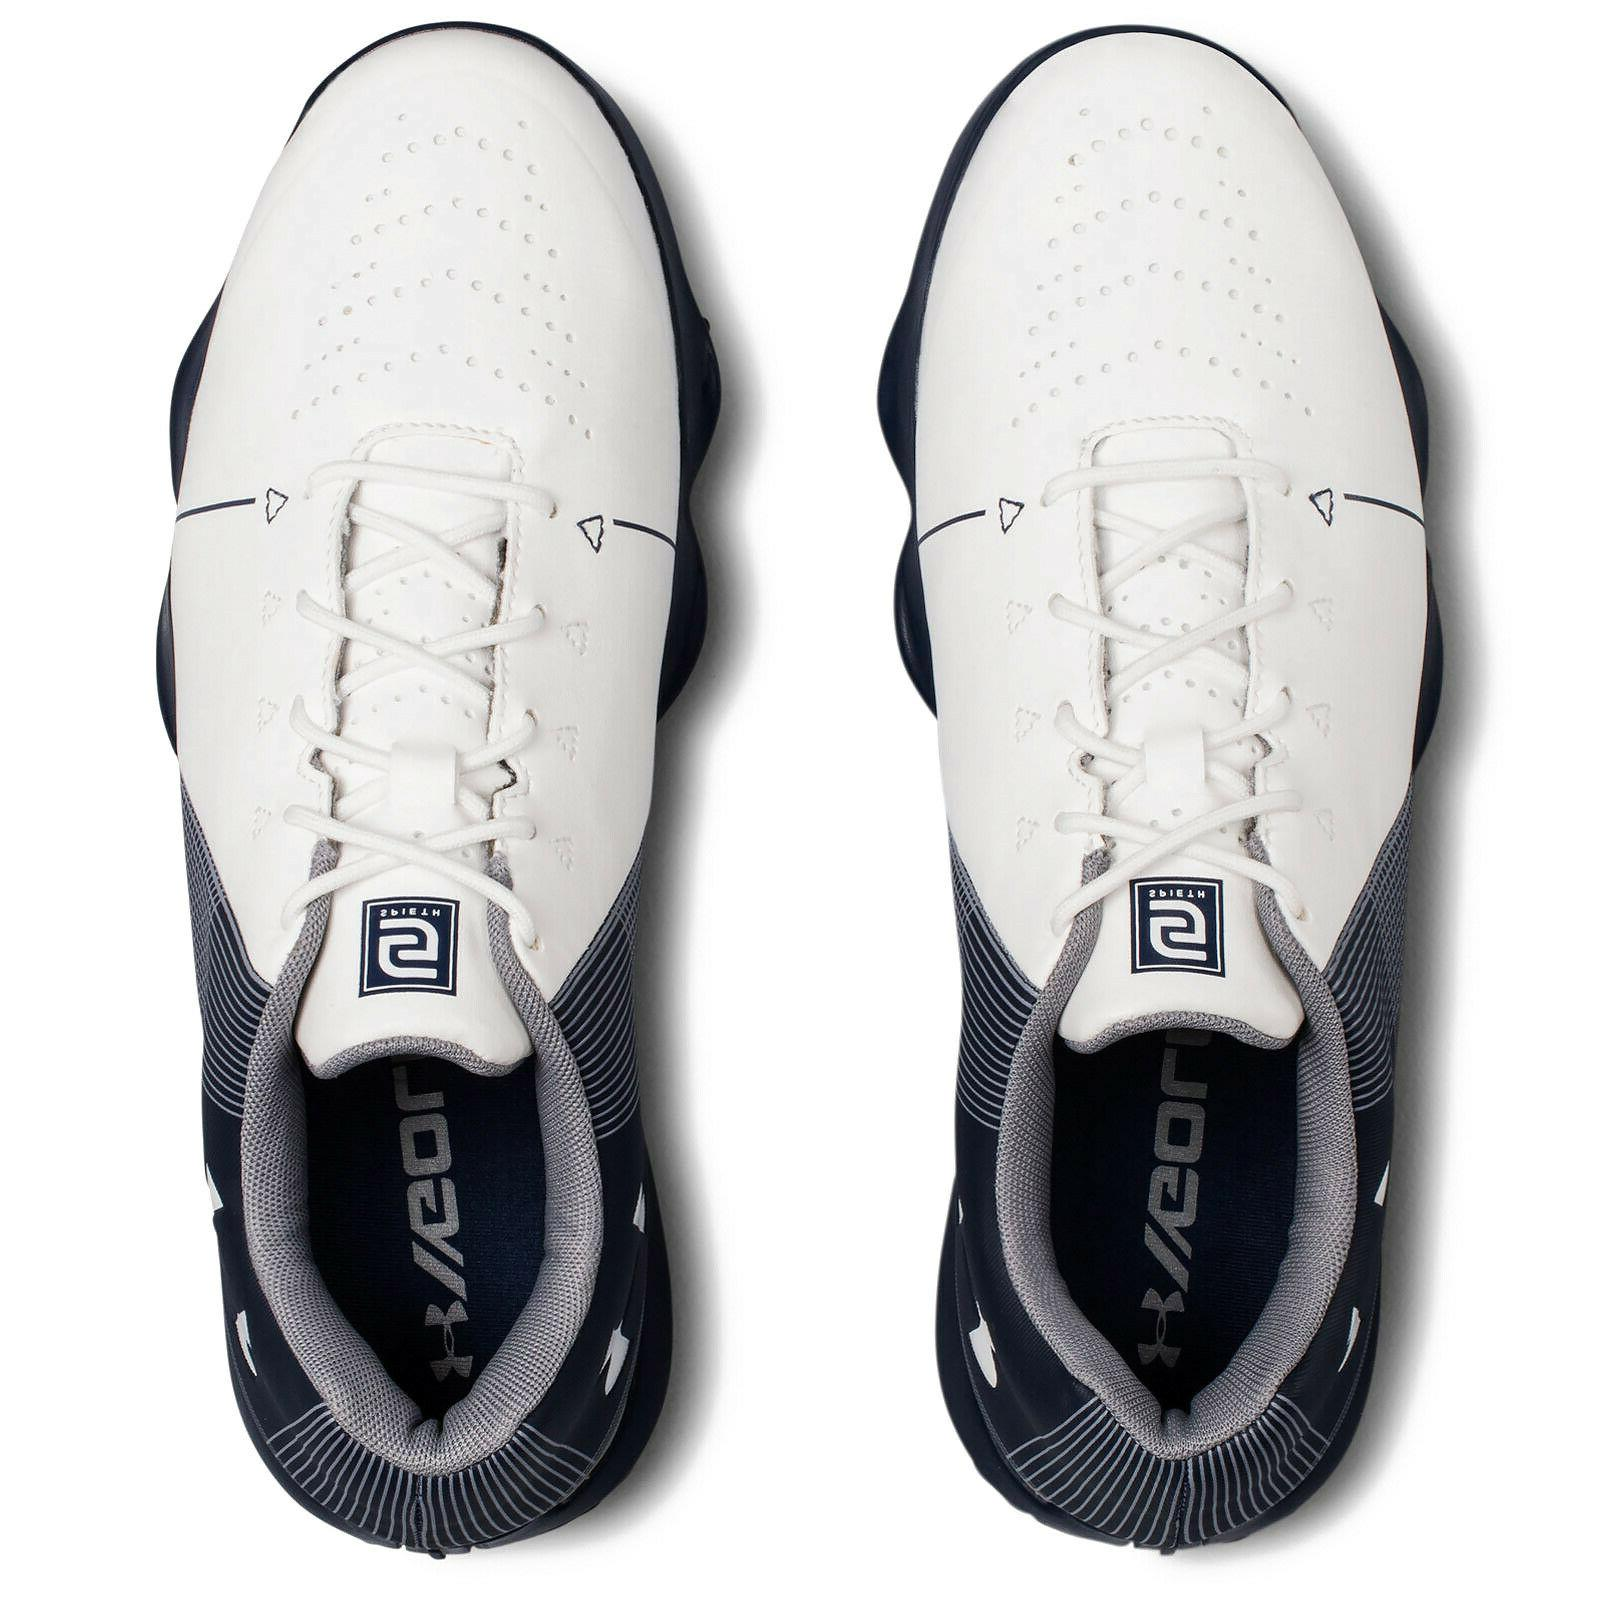 UNDER ARMOUR 2 Golf Shoes Kids Pick Size